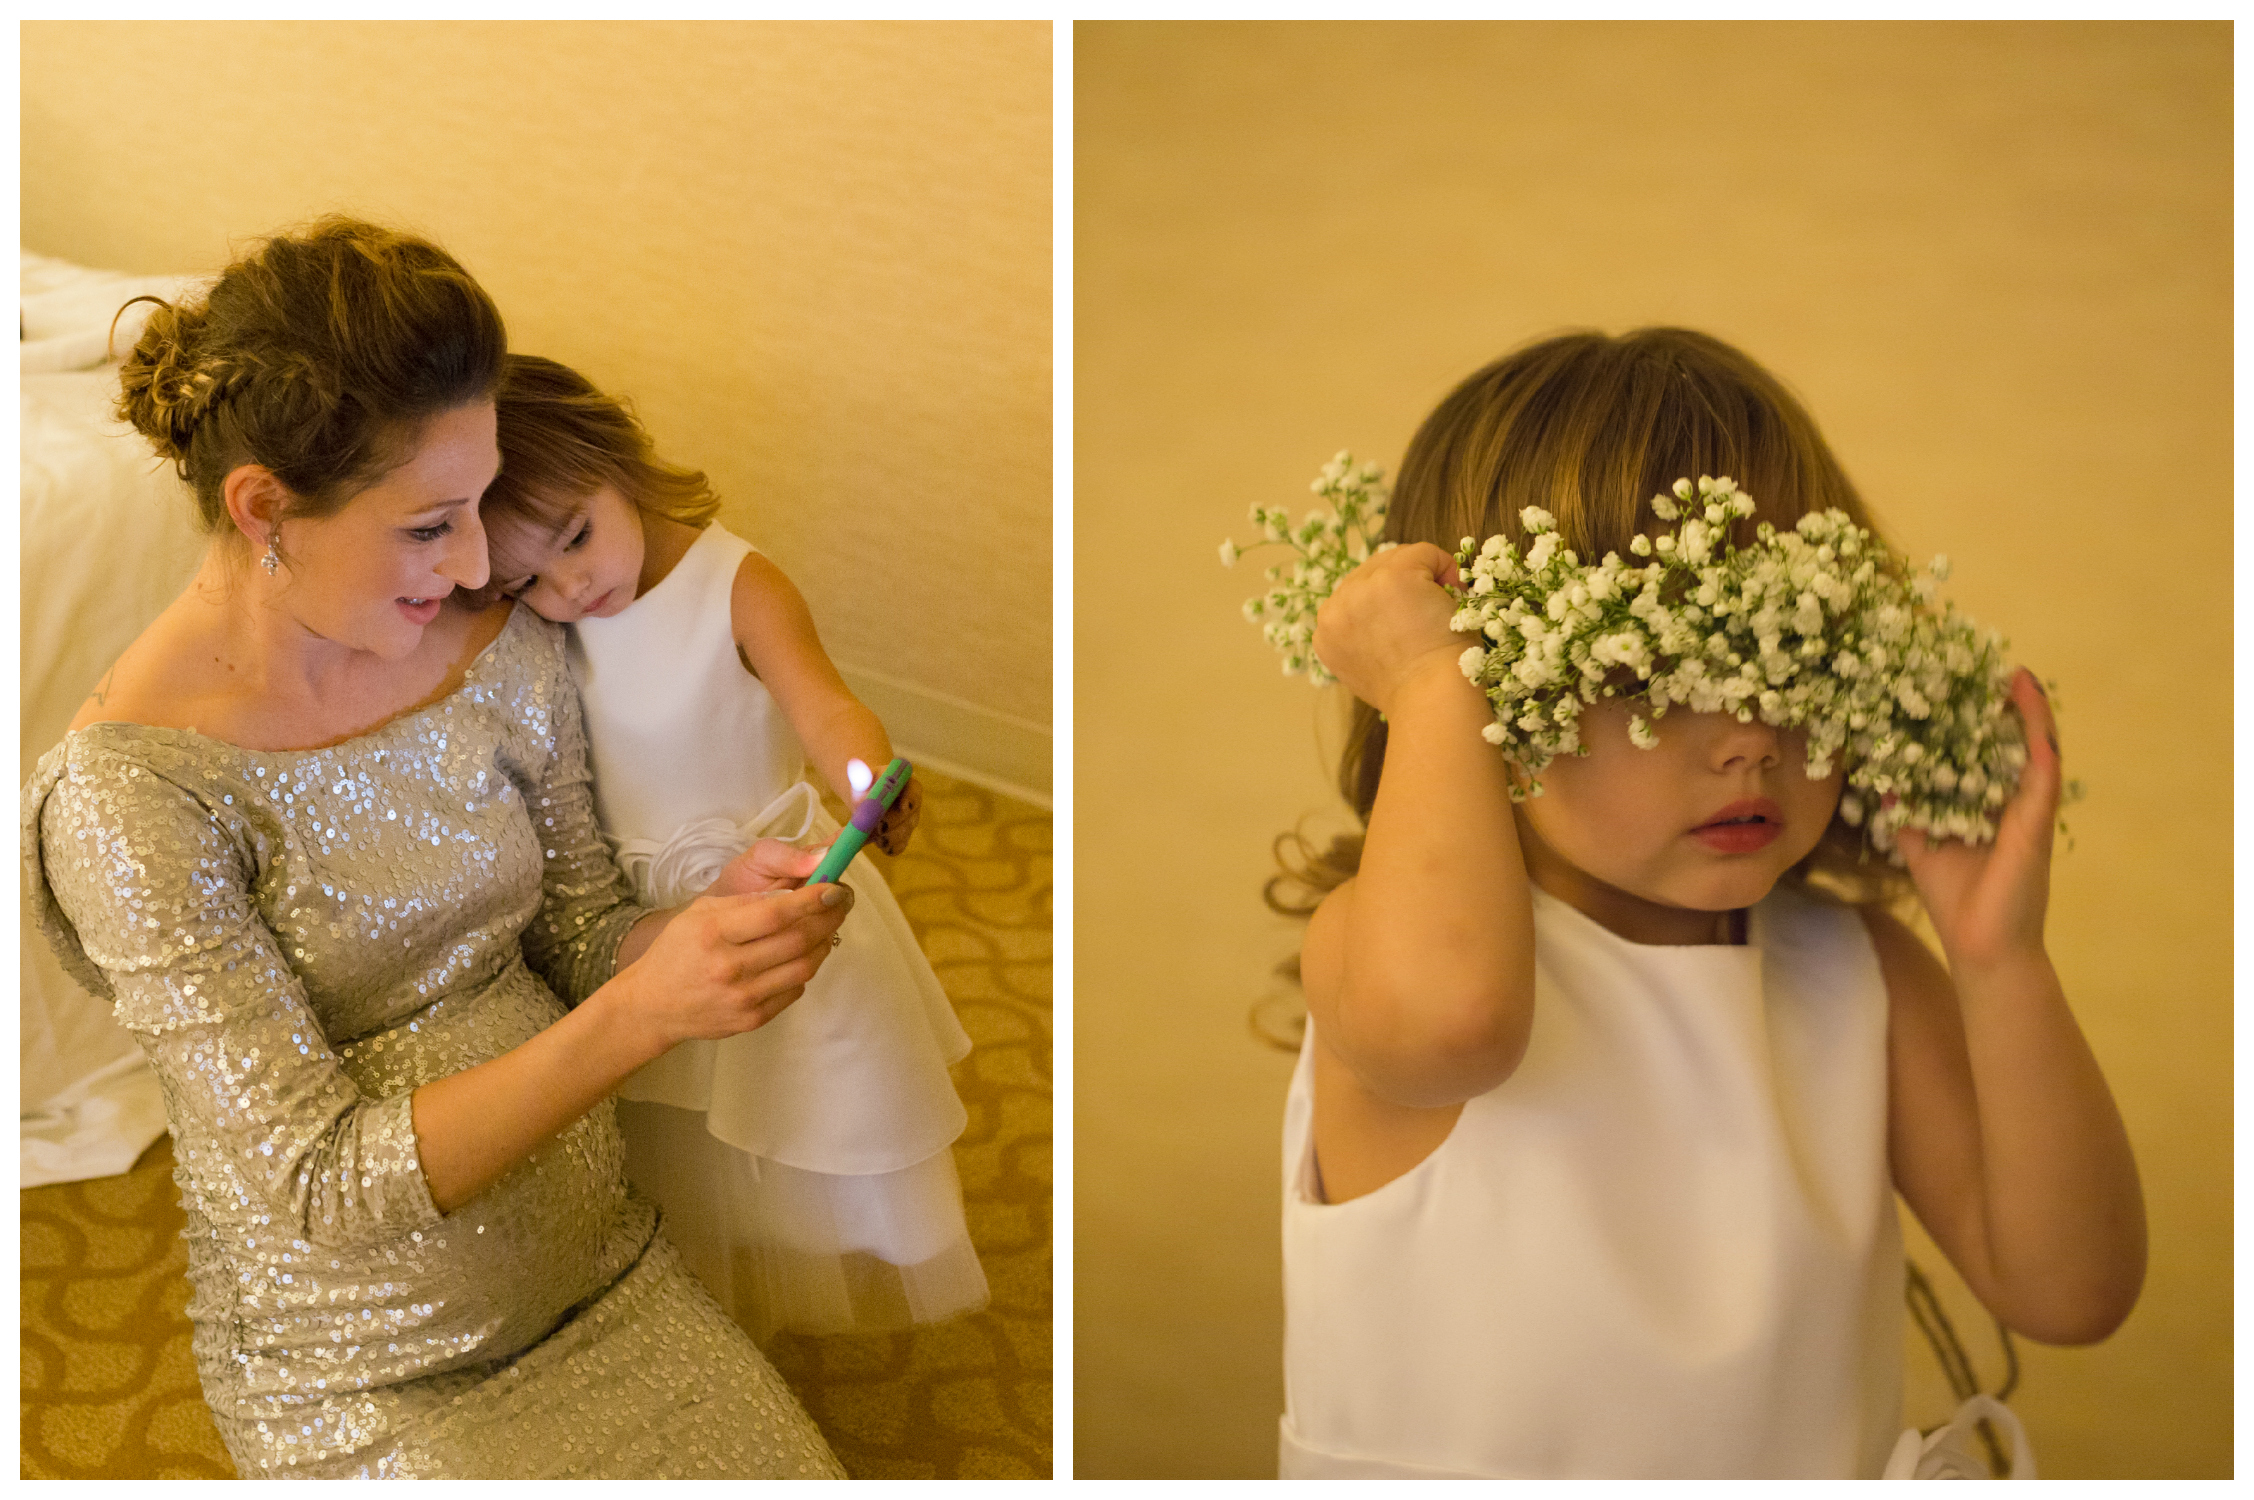 mother and daughter, matron of honor and flower girl